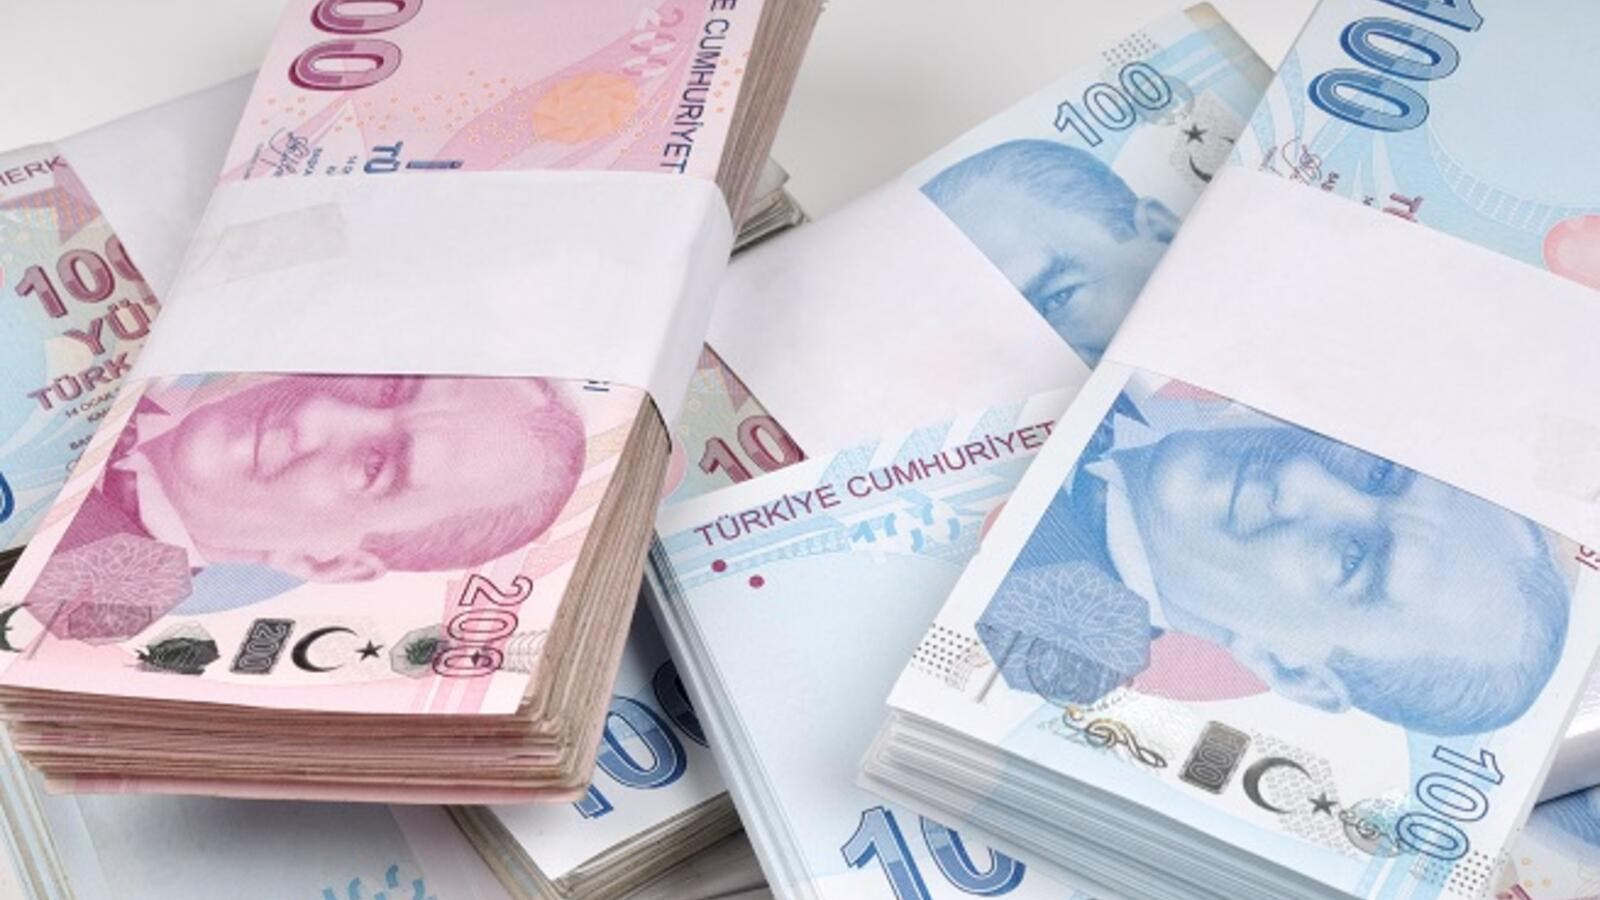 The currency recovered most of its losses after significant tightening by the country's central bank. (Shutterstock)